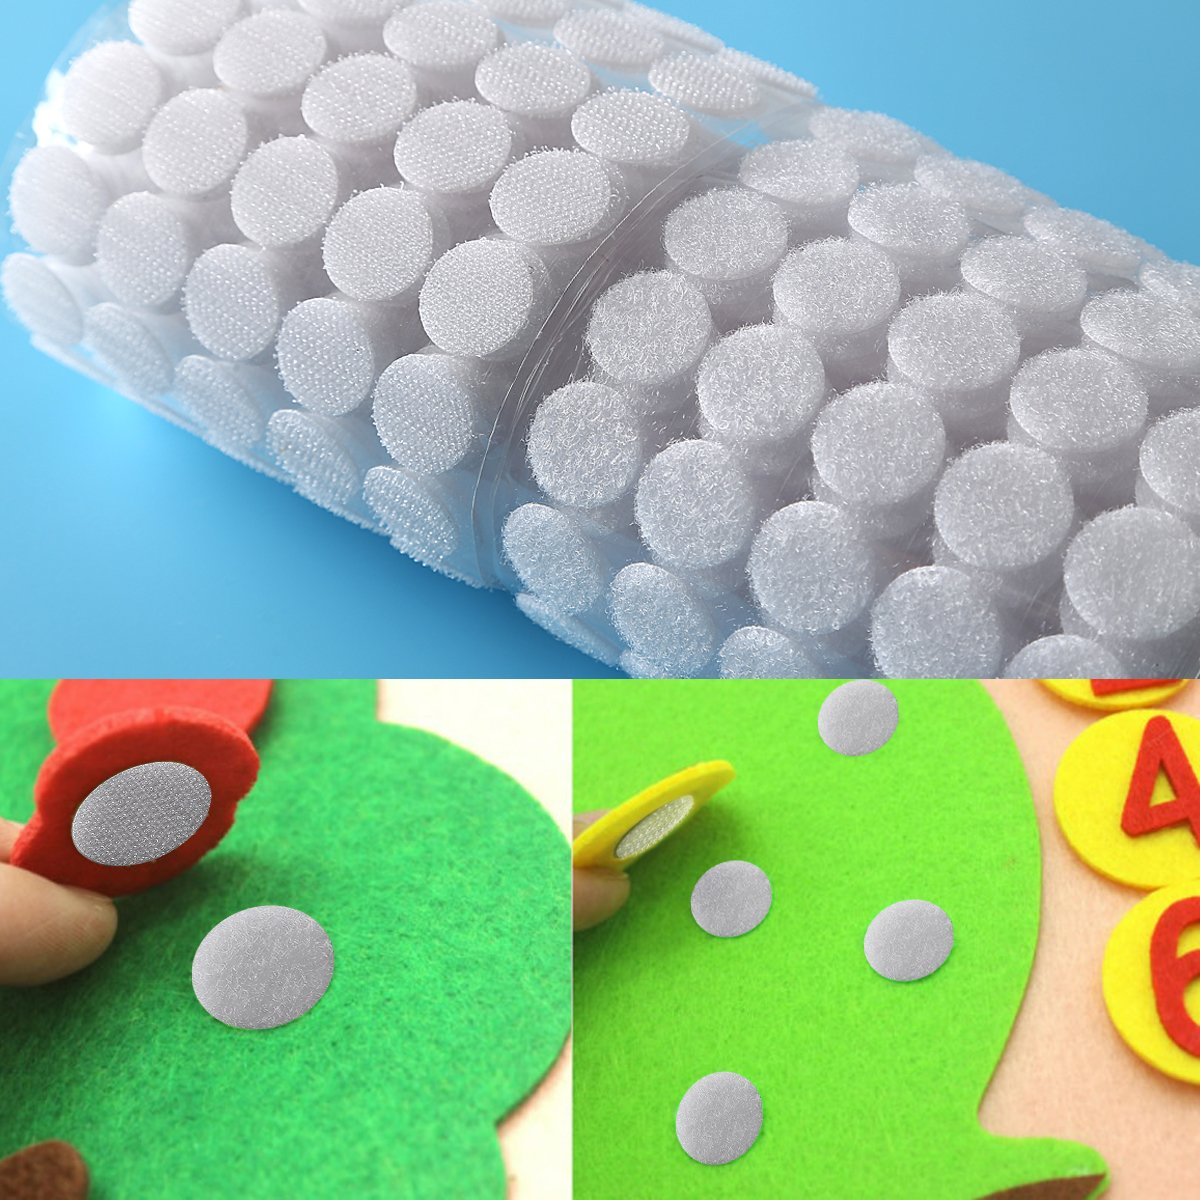 Sticky Back Coins Clear Dots Hook and Loop Self Adhesive Dot Tapes 3/4'' Diameter 1000pcs(500 Pair) - White by Alldio (Image #6)